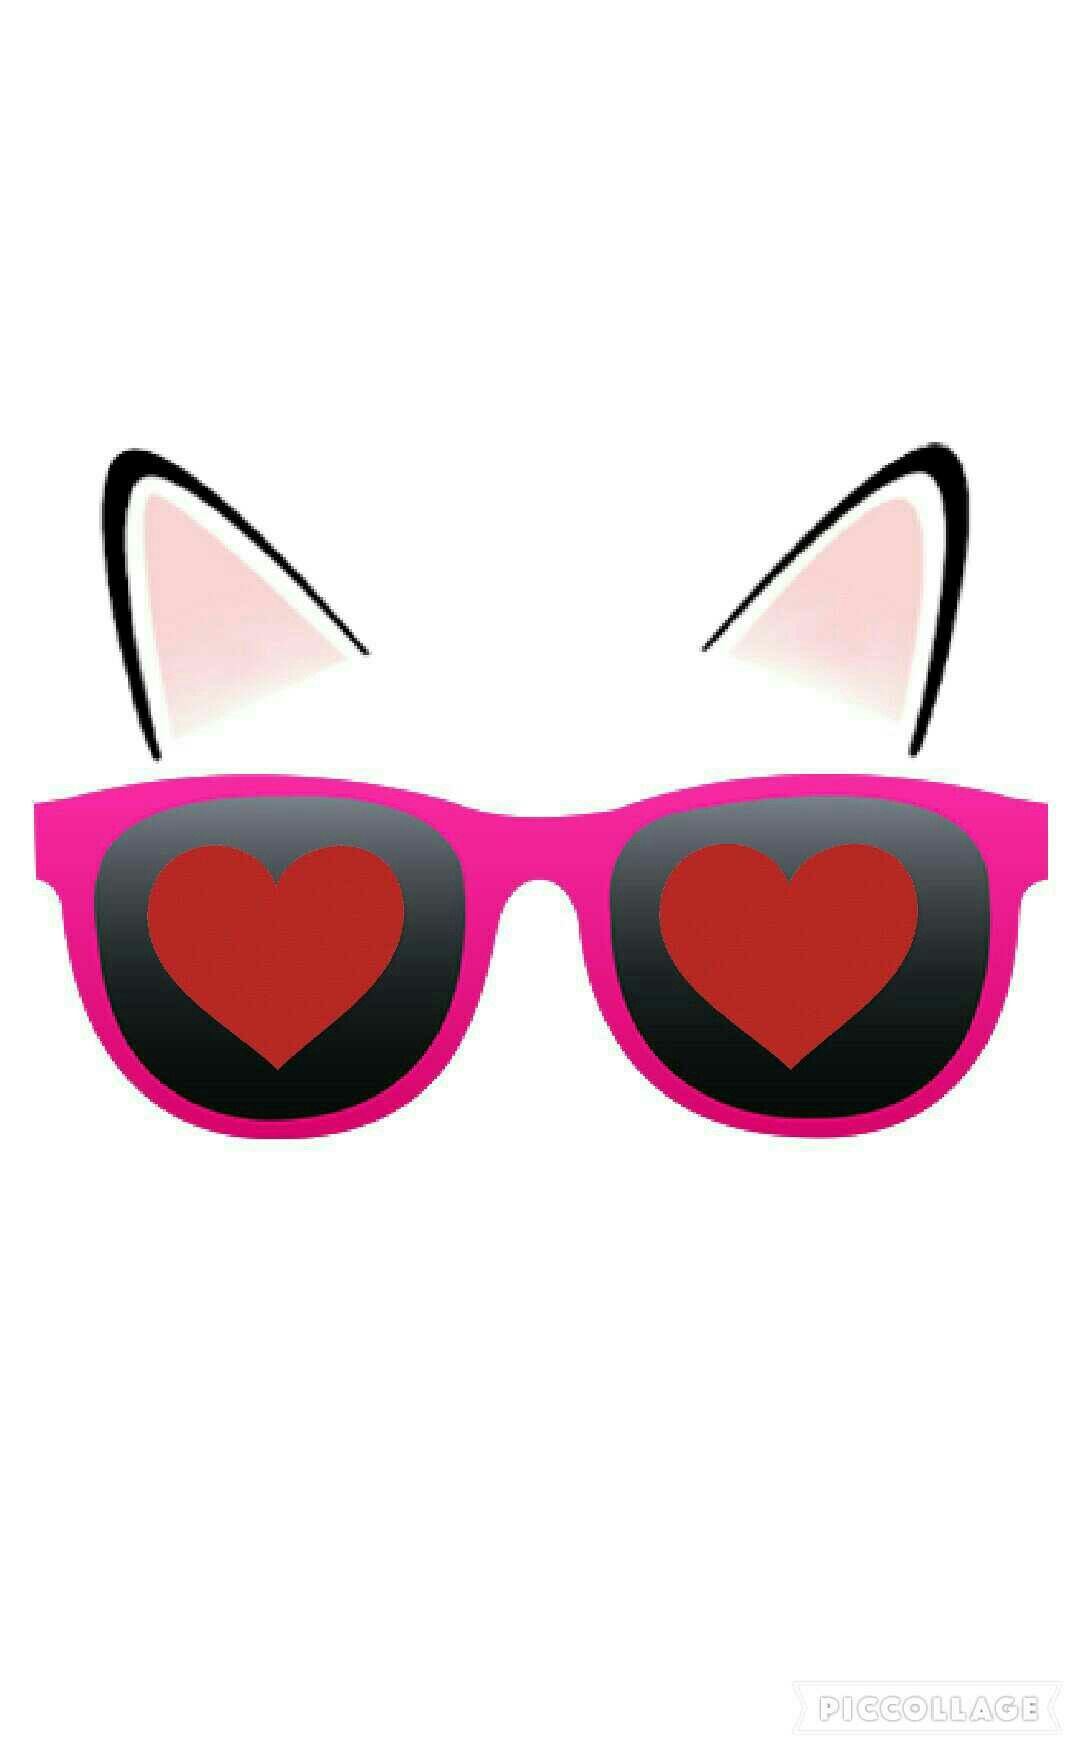 Pin By Choupi On Wallpapers Cat Eye Sunglasses Eye Sunglasses Mirrored Sunglasses